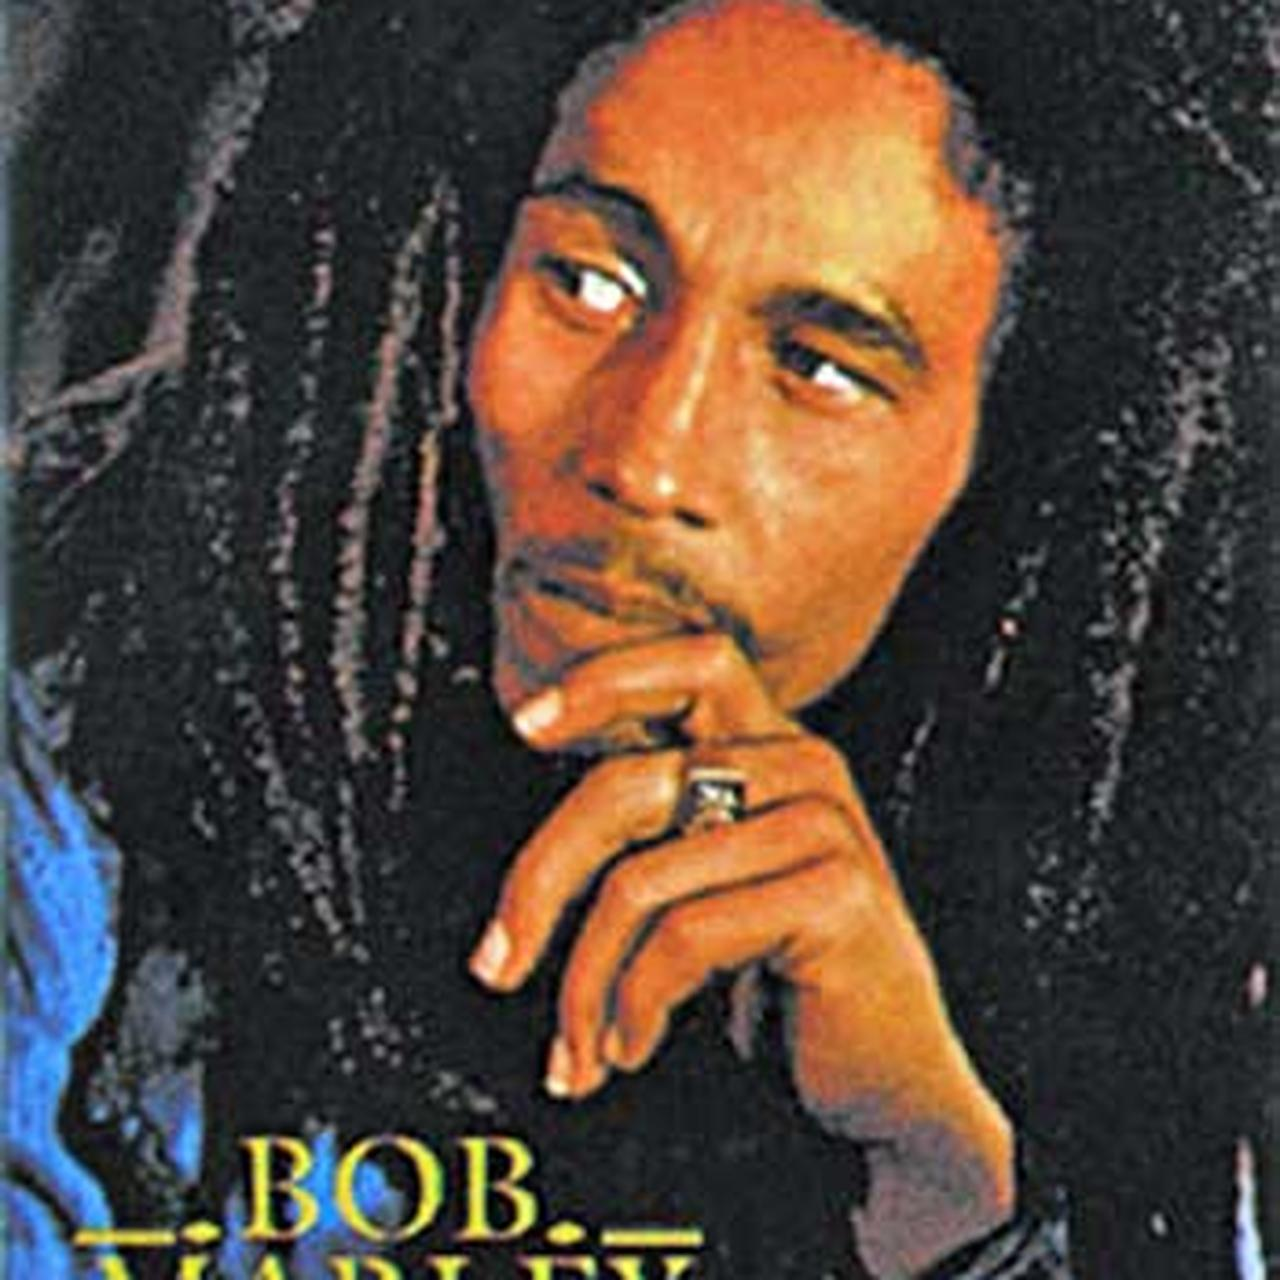 Bob marley legend cd fabric poster bob marley legend cd fabric poster altavistaventures Choice Image